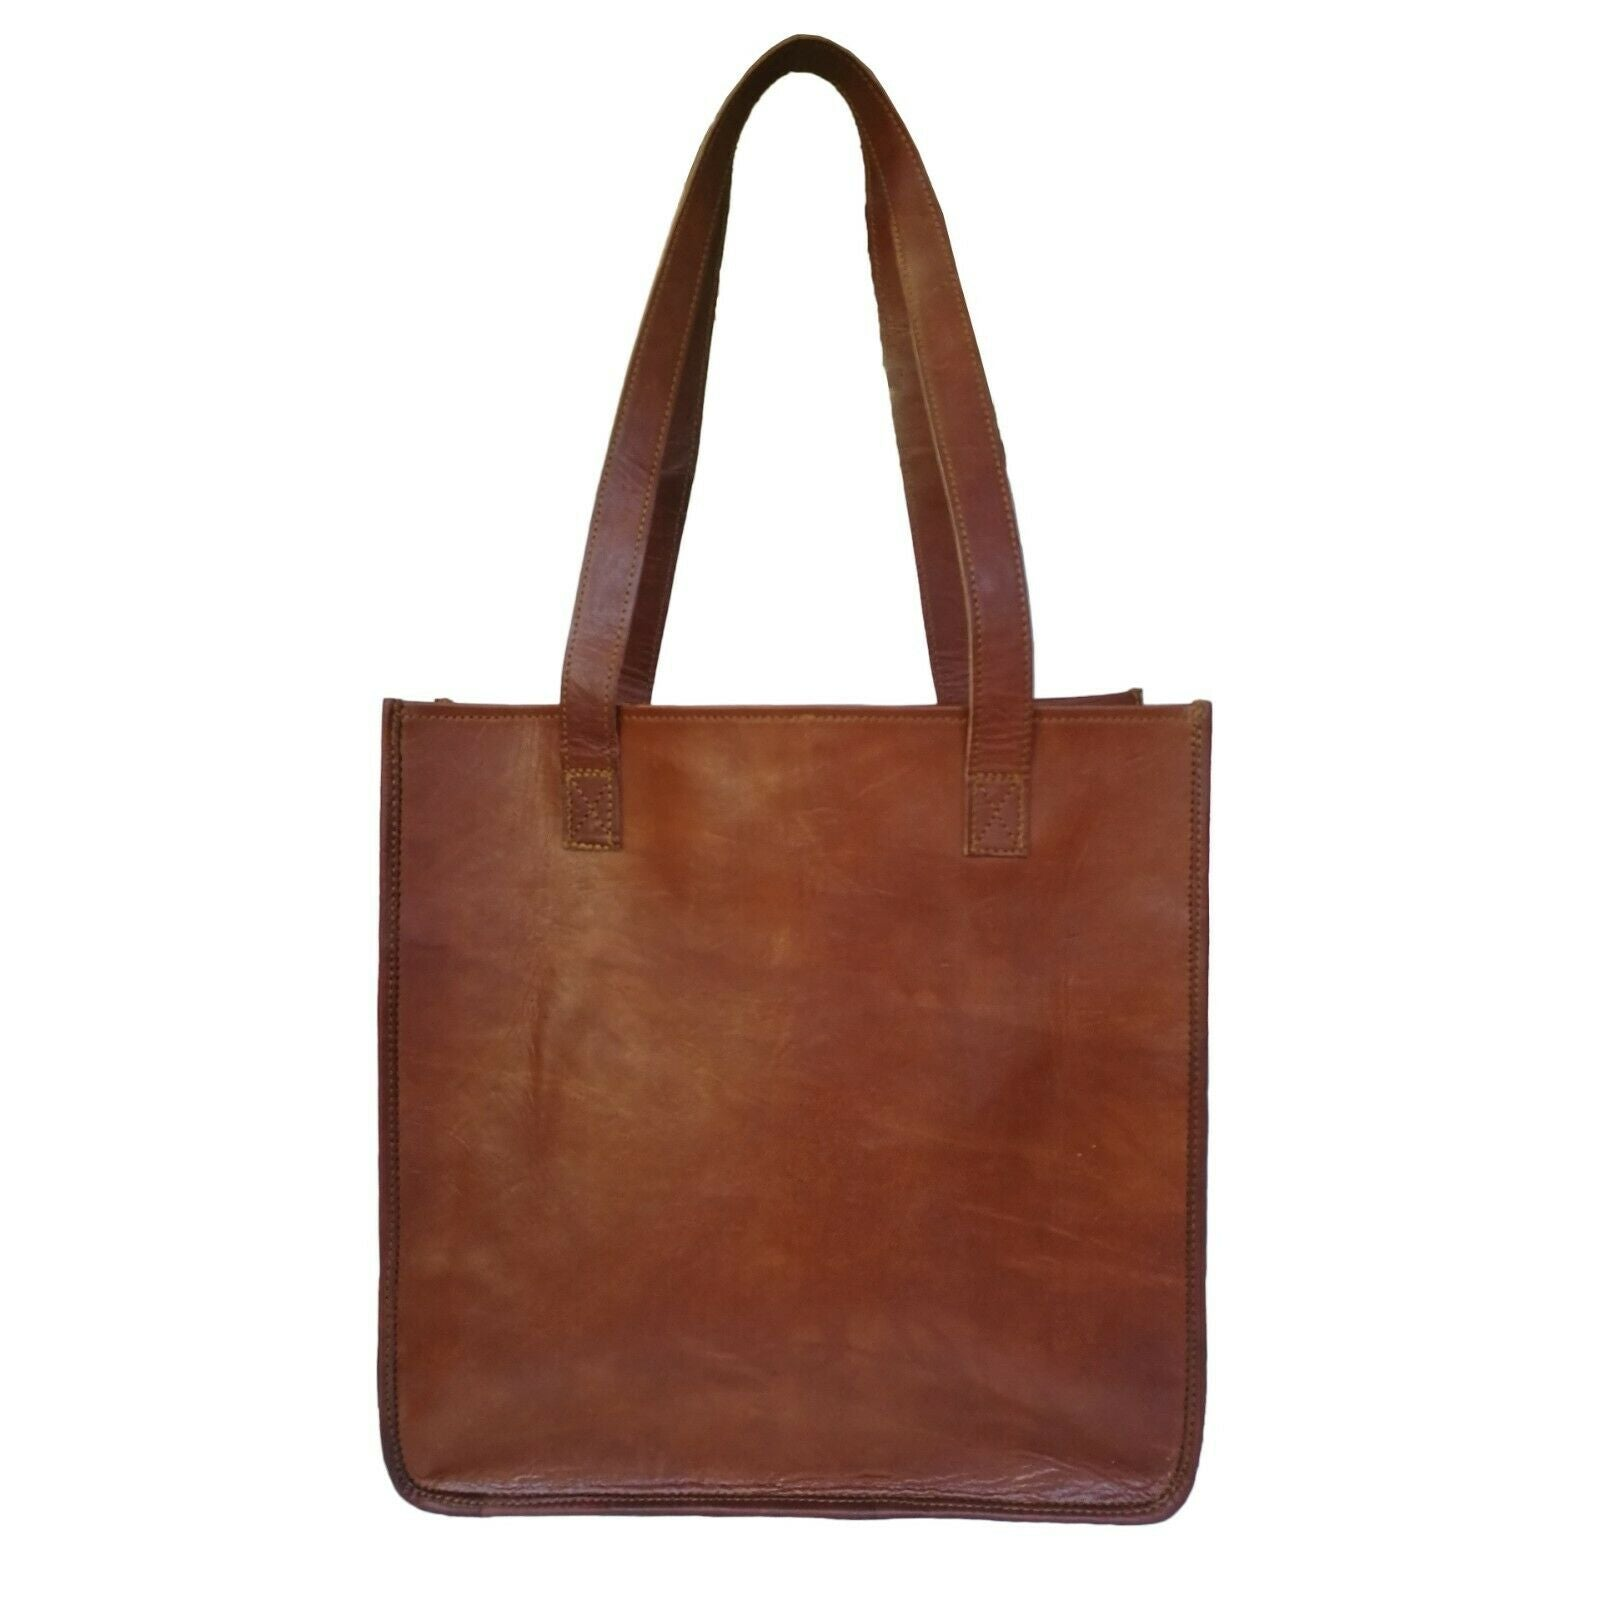 Women's Classic Leather Tote